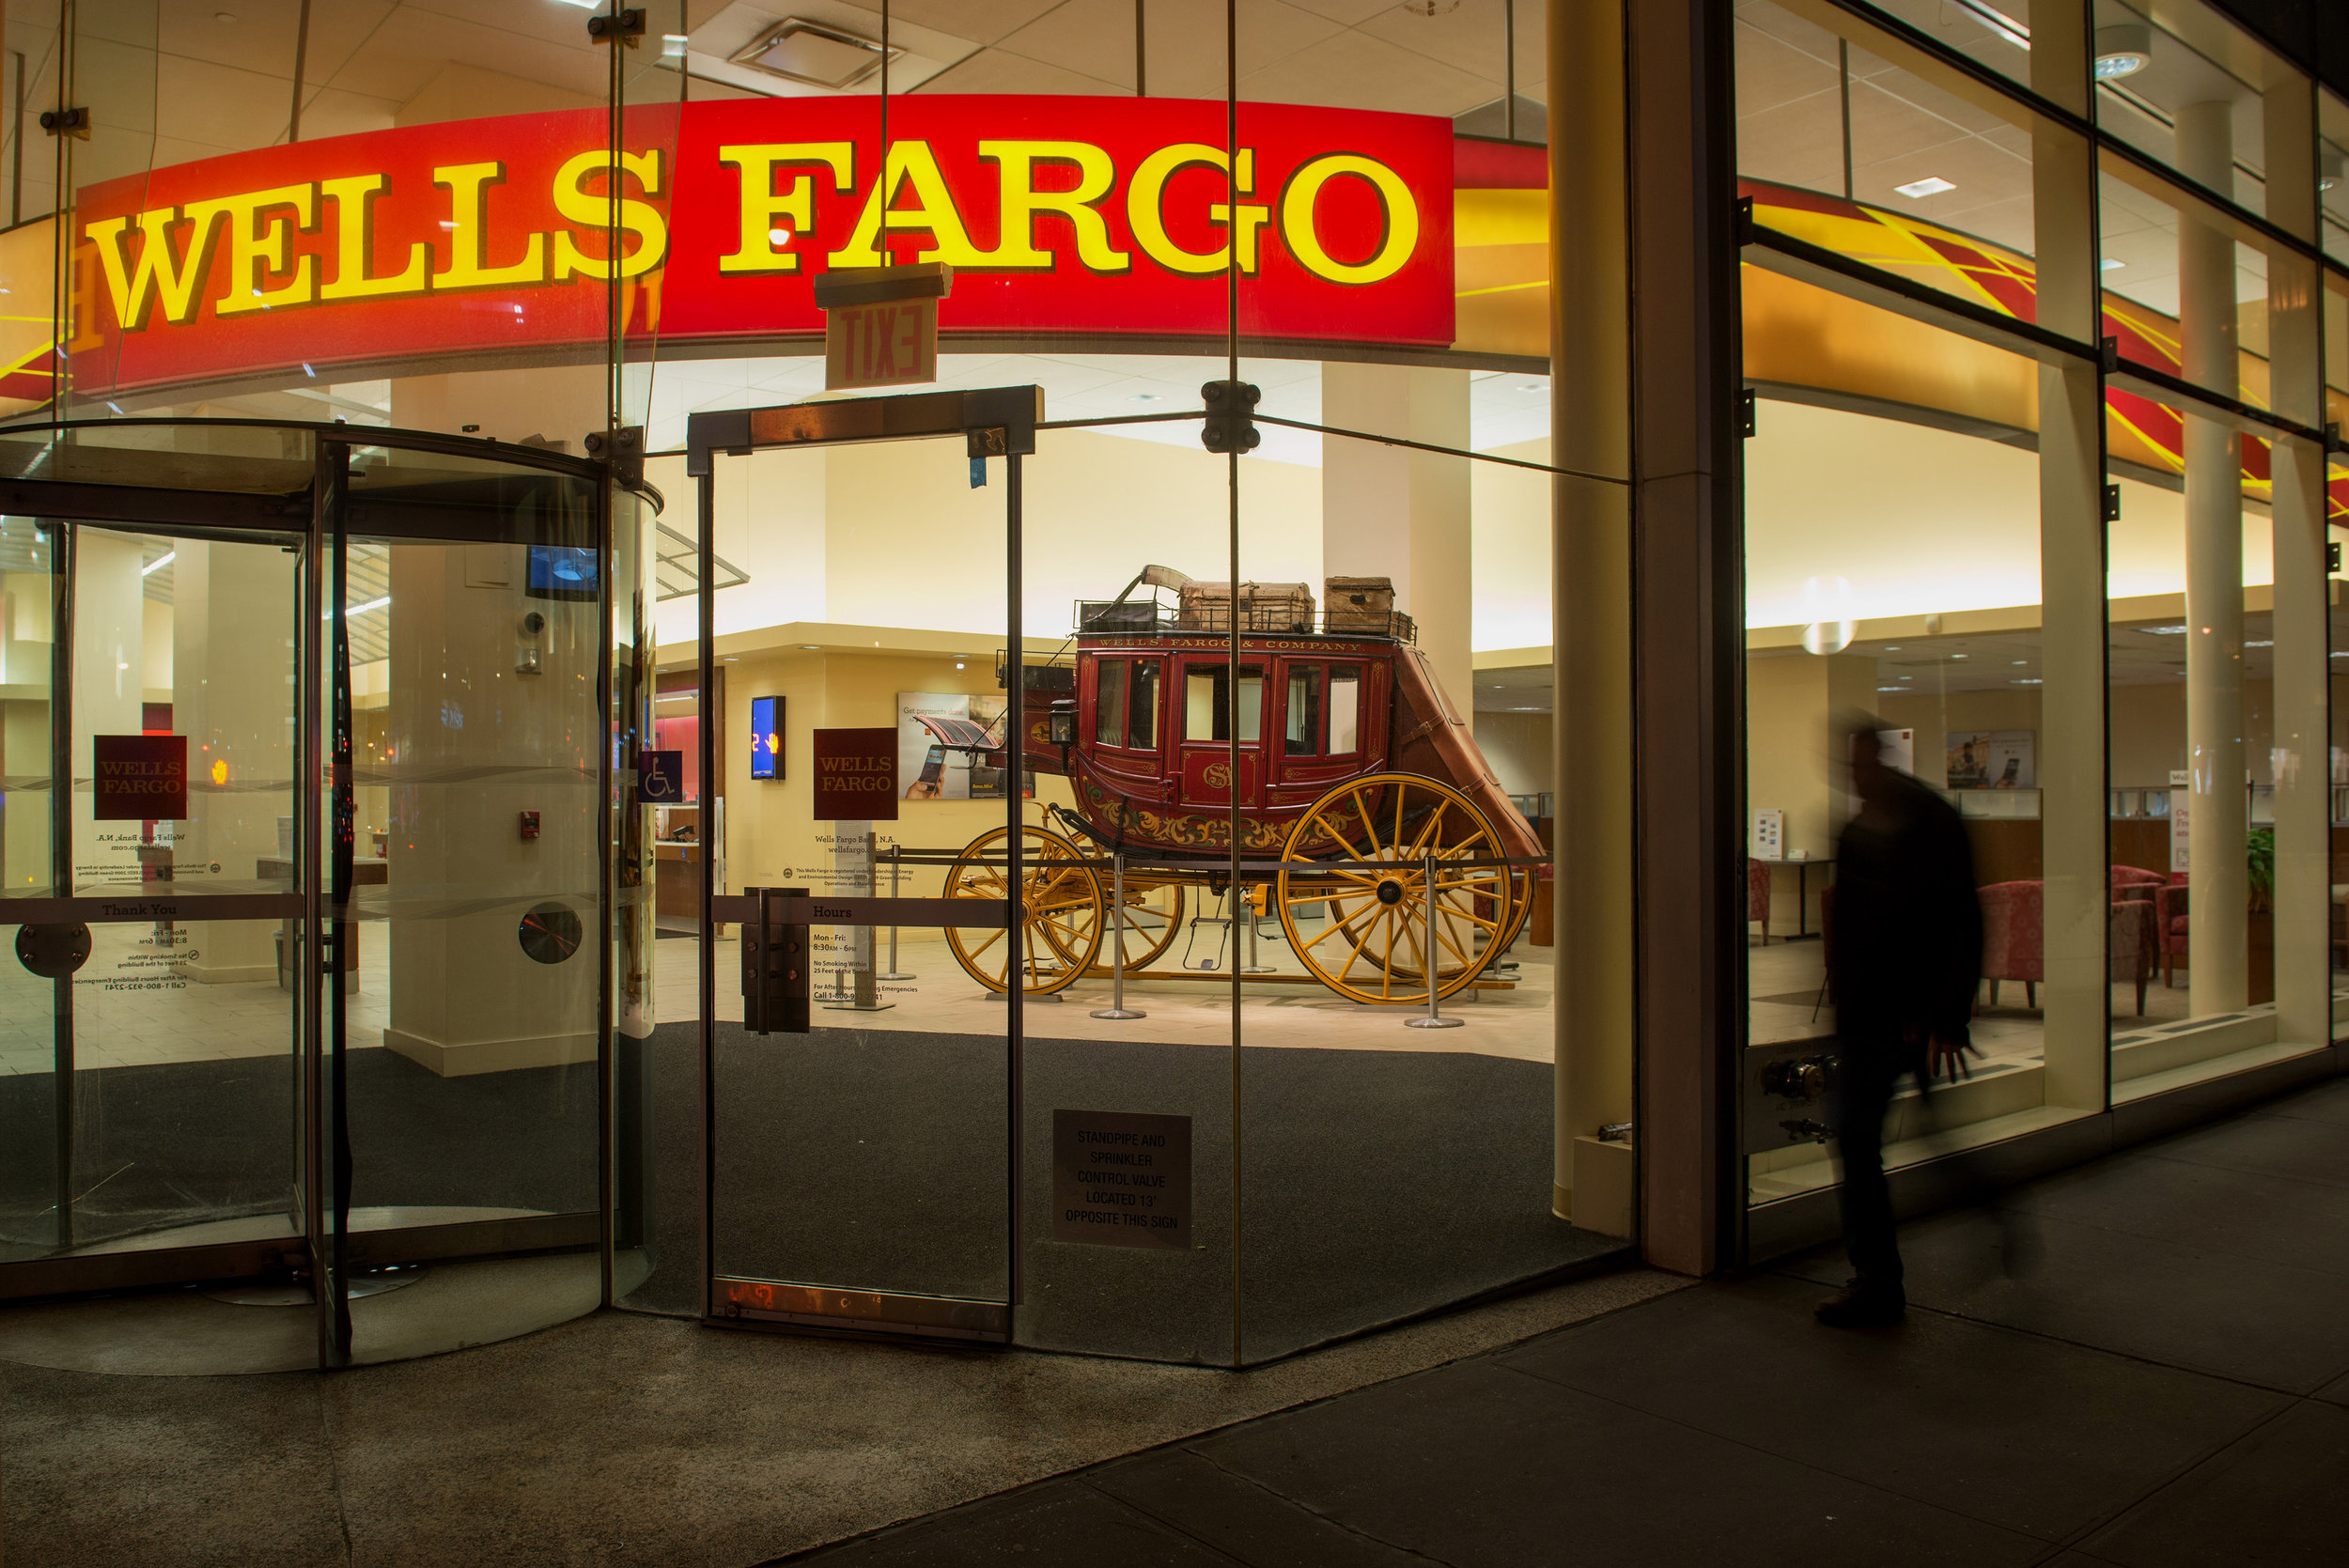 Wells Fargo & Company is an American multinational financial services company headquartered in San Francisco, California, with central offices throughout the United States. It is the world's fourth-largest bank by market capitalization and the third largest bank in the US by total assets.